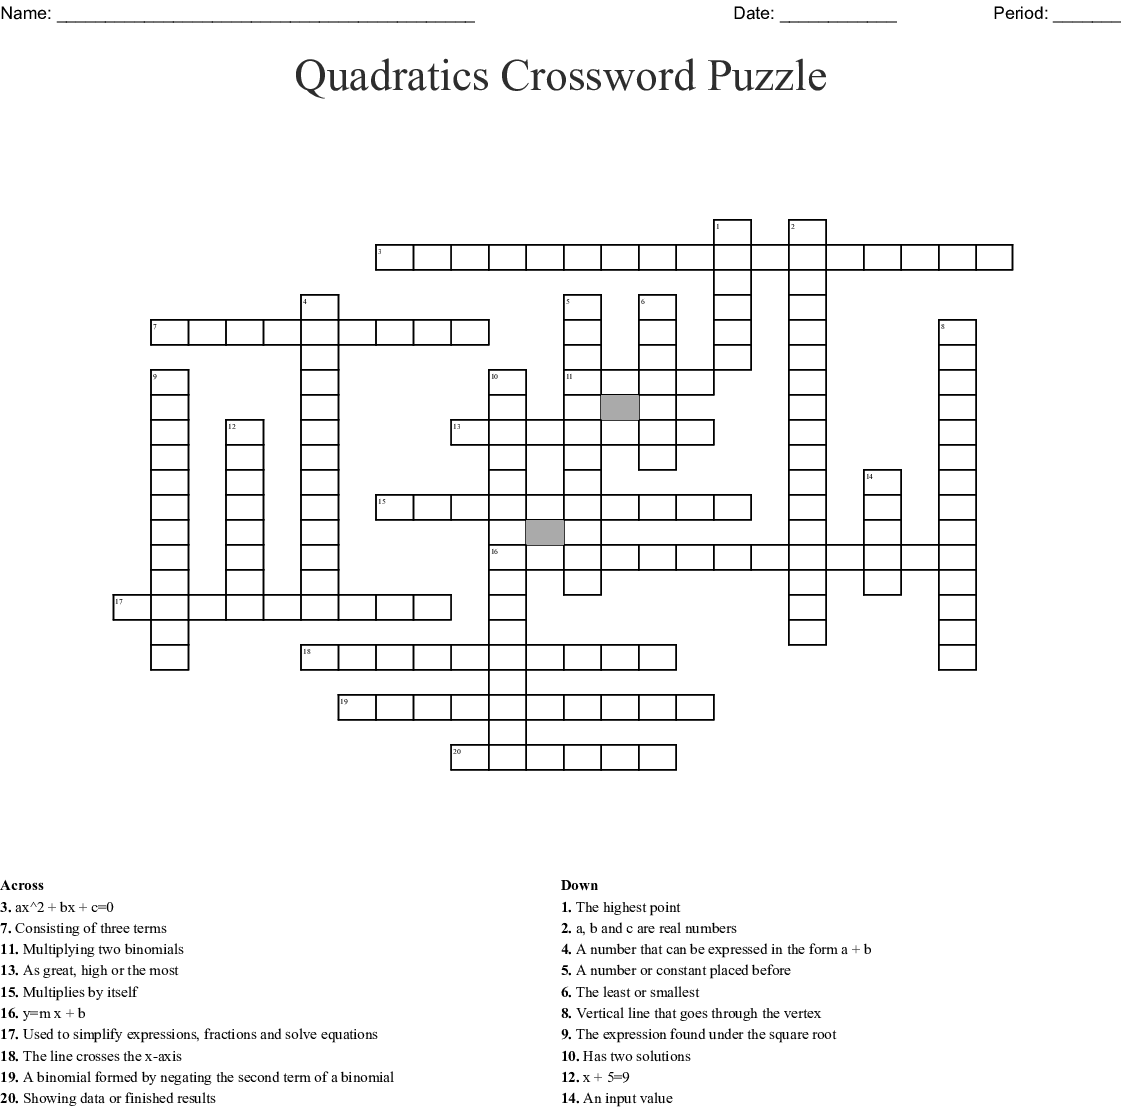 Quadratic Function Word Search Puzzle